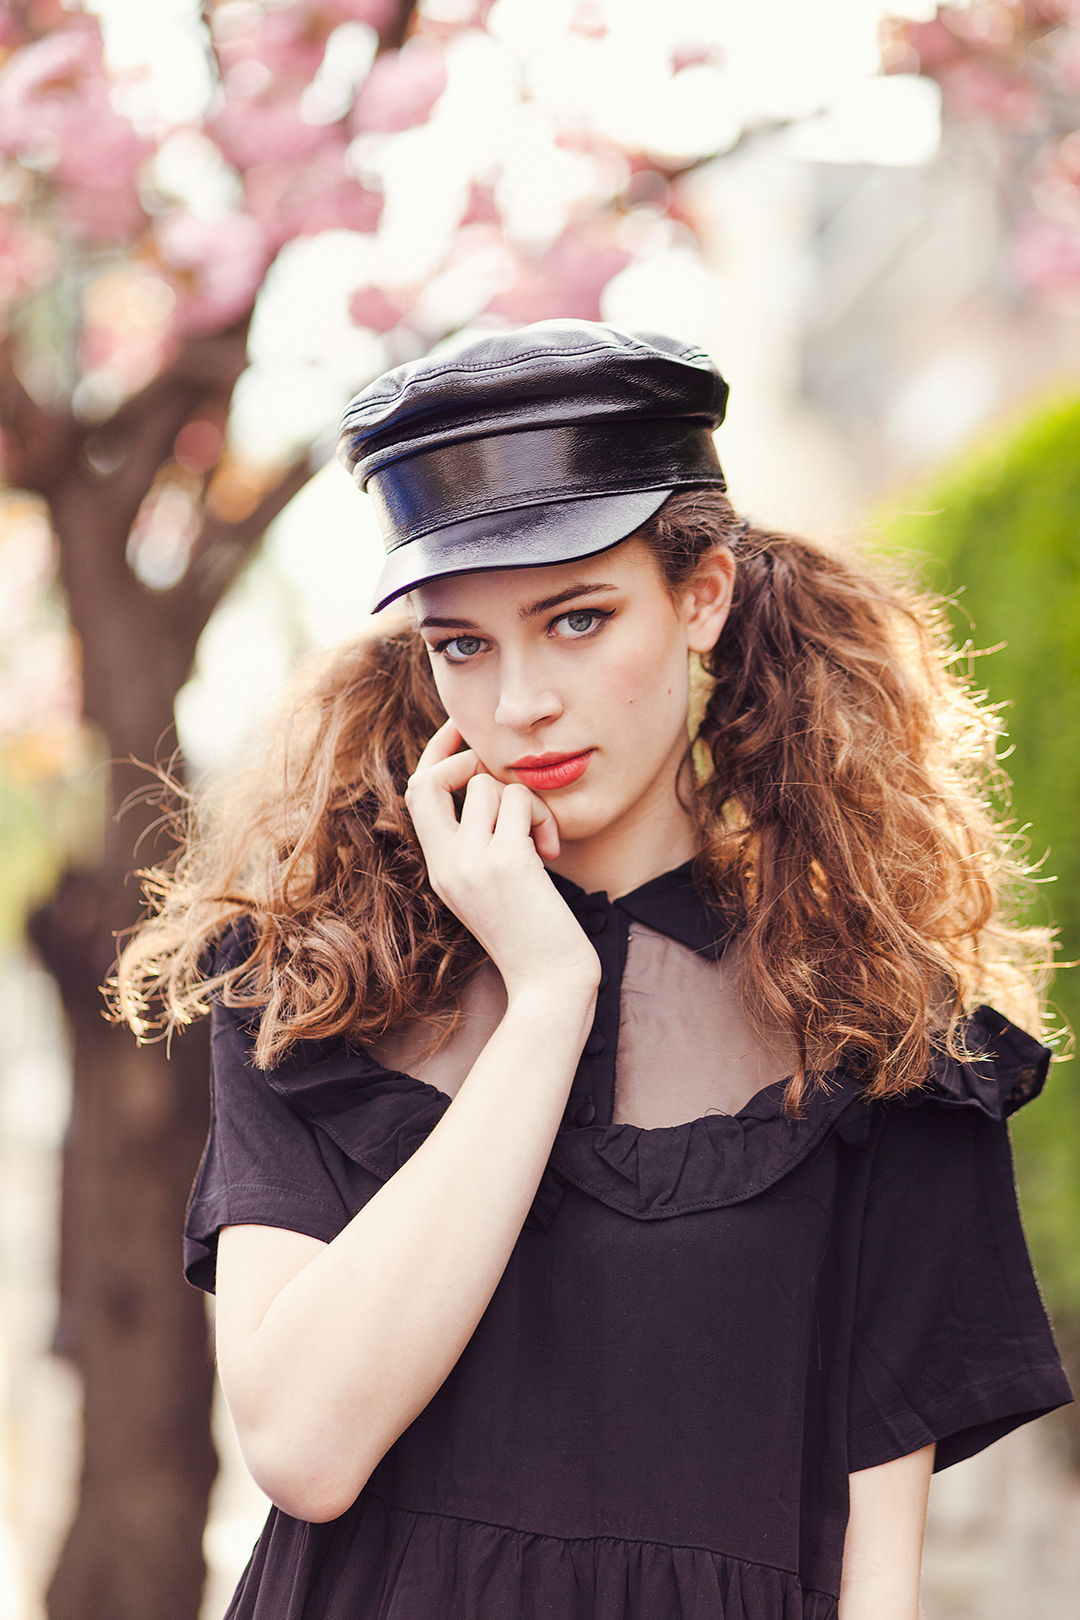 model with brown curly hair with red lips and black dress and hat in front of cherry blossom tree. Angel @ PRM agency model test by Ailera Stone